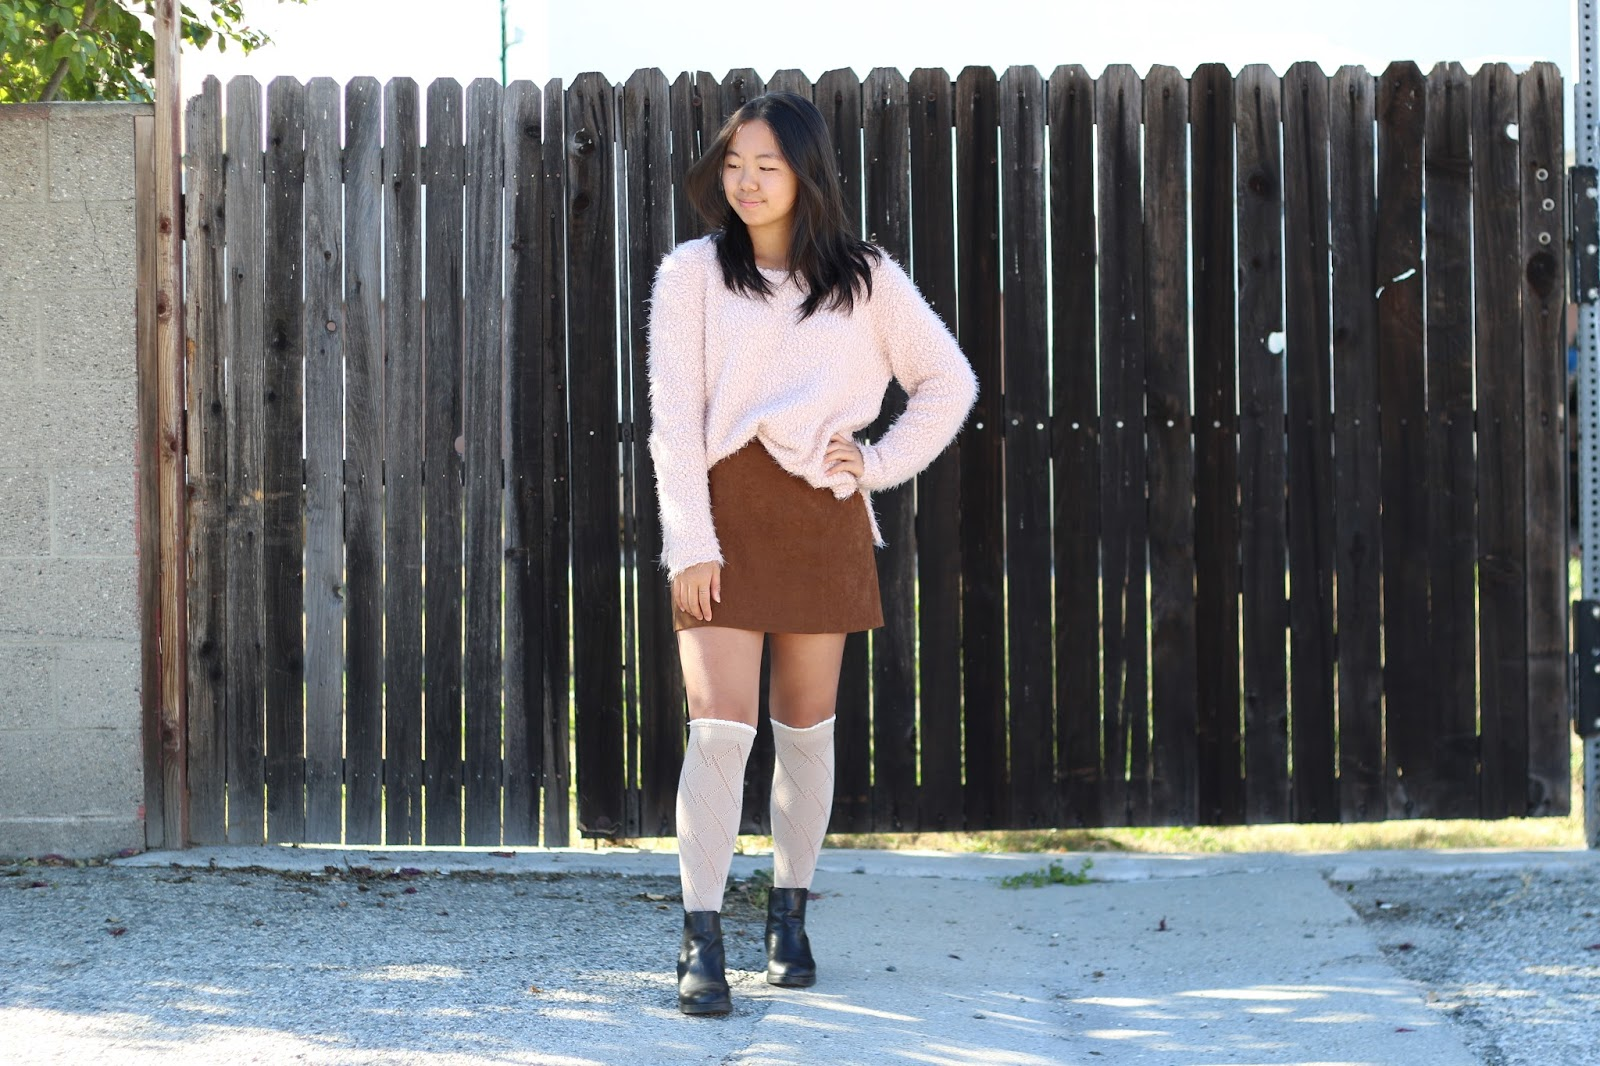 outfit of the day, outfit, personal style, sweater, suede skirt